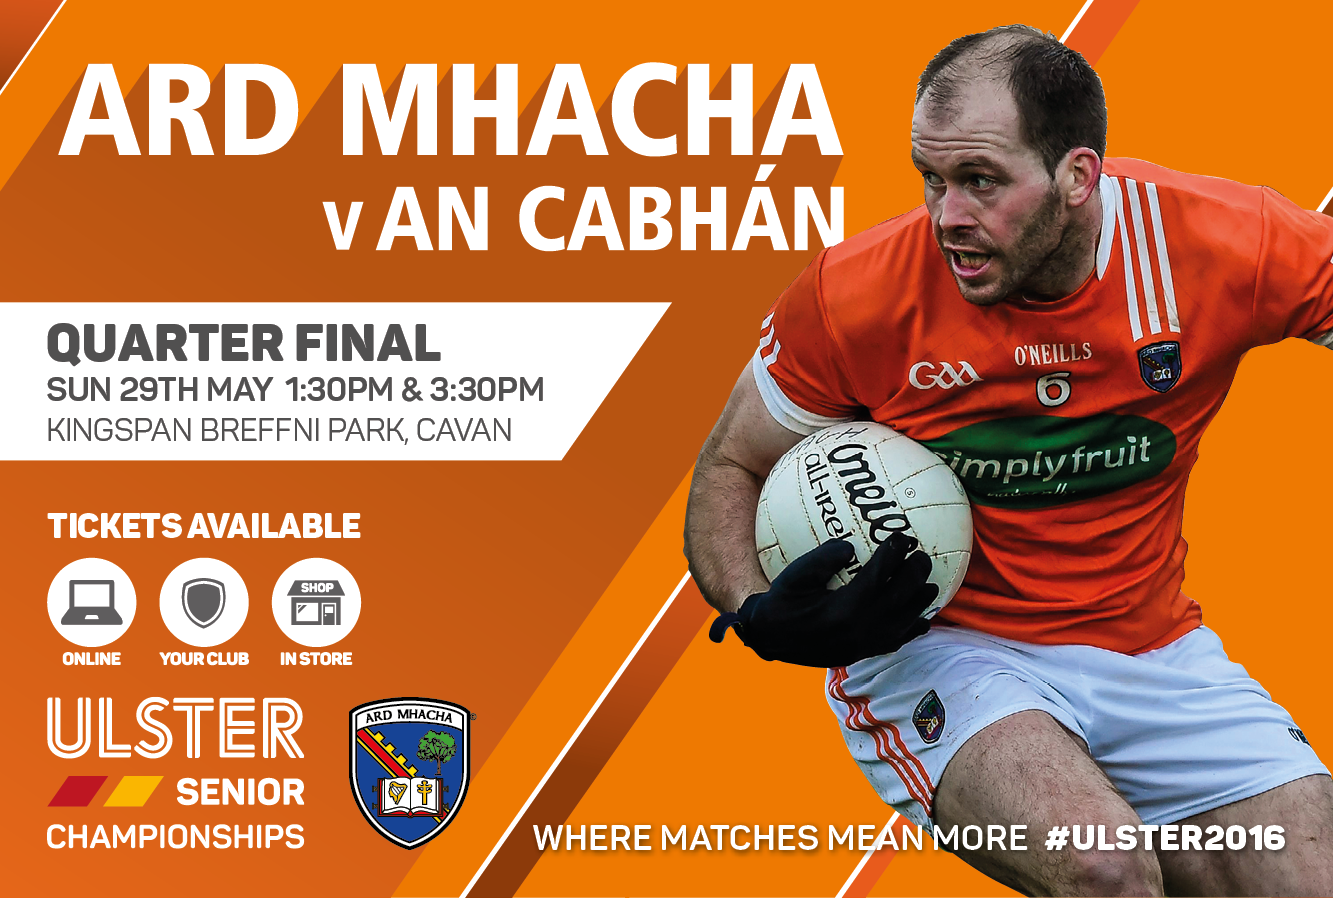 Travel advice for Armagh v Cavan